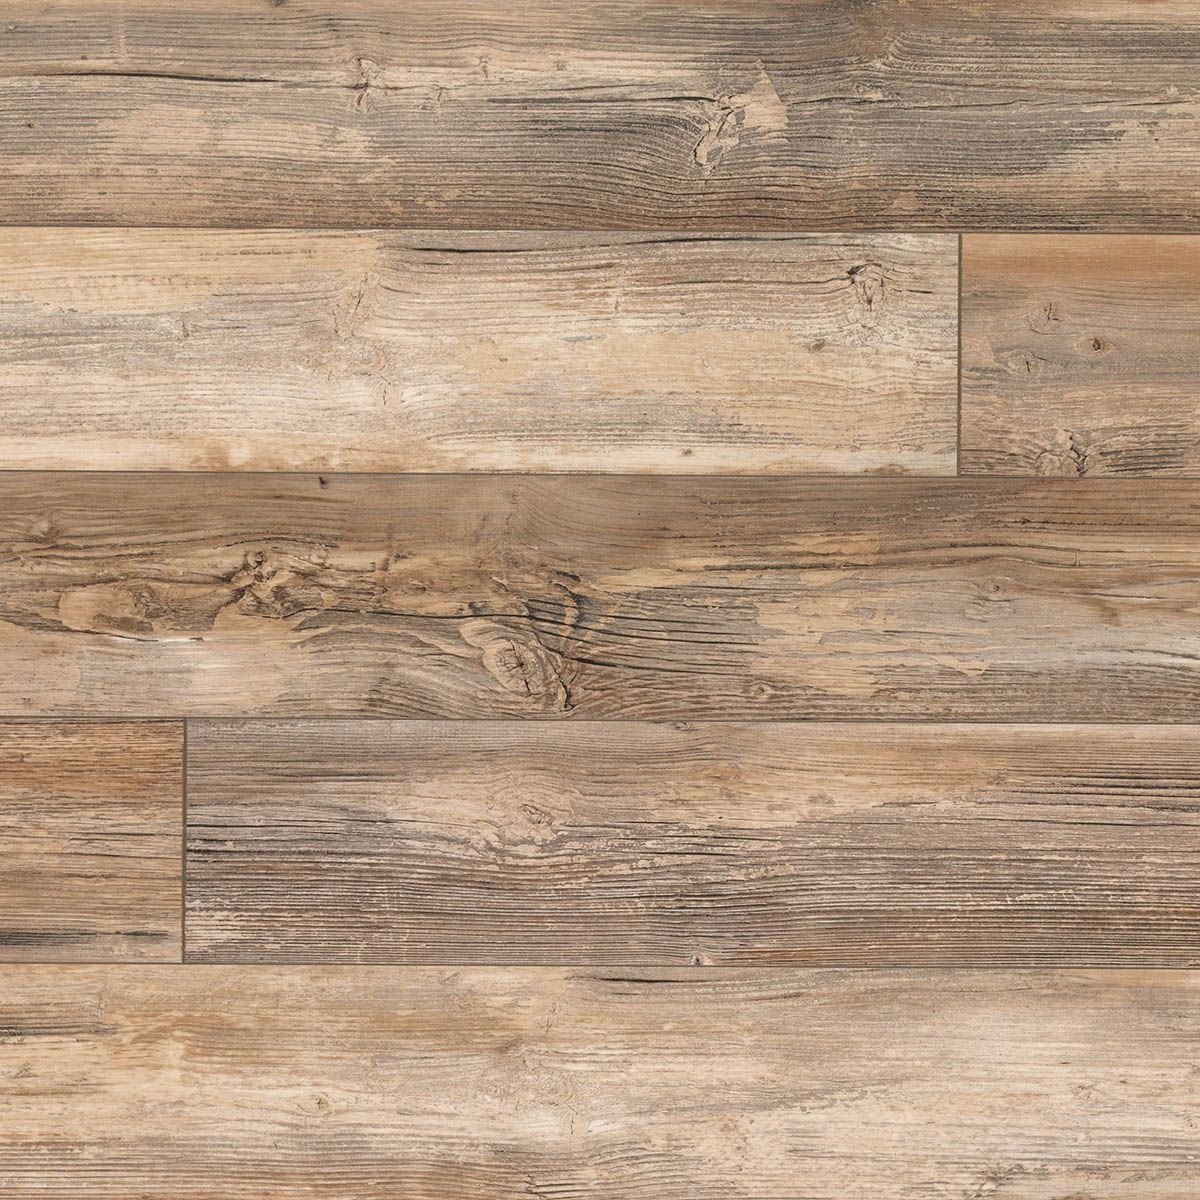 3 hardwood flooring of flooring gallery mozzone lumber for a warm toffee brown with gray accents just like these planks theyre perfect for elegant comfortable looks gorgeous distressed laminate floor